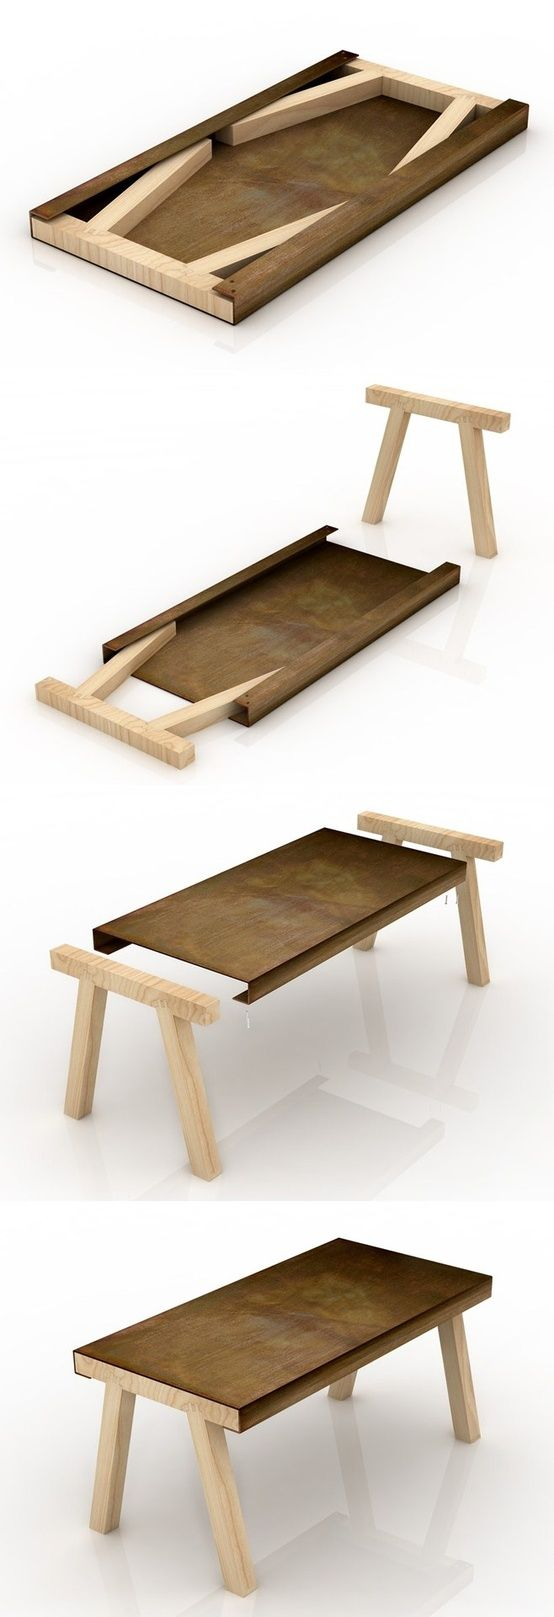 Mastro worktable, by Studio Gumdesign 'Mastro' is a furniture piece whose formal structure is derived from that of old work tables and benches found in a craftsman's workshop. The table is composed of...